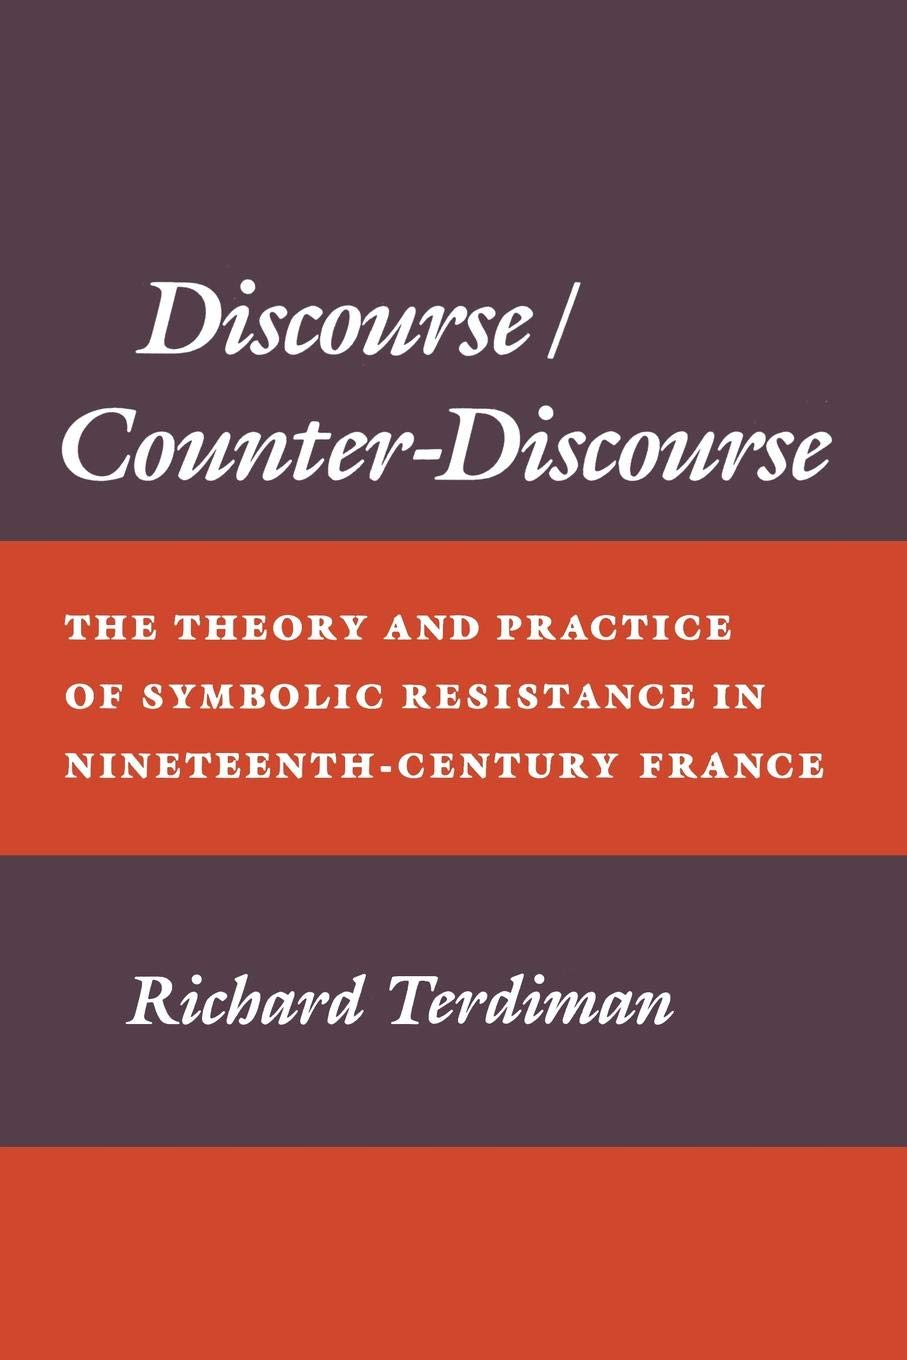 Discourse Counter Discourse  Theory And Practice Of Symbolic Resistance In Nineteenth Century France